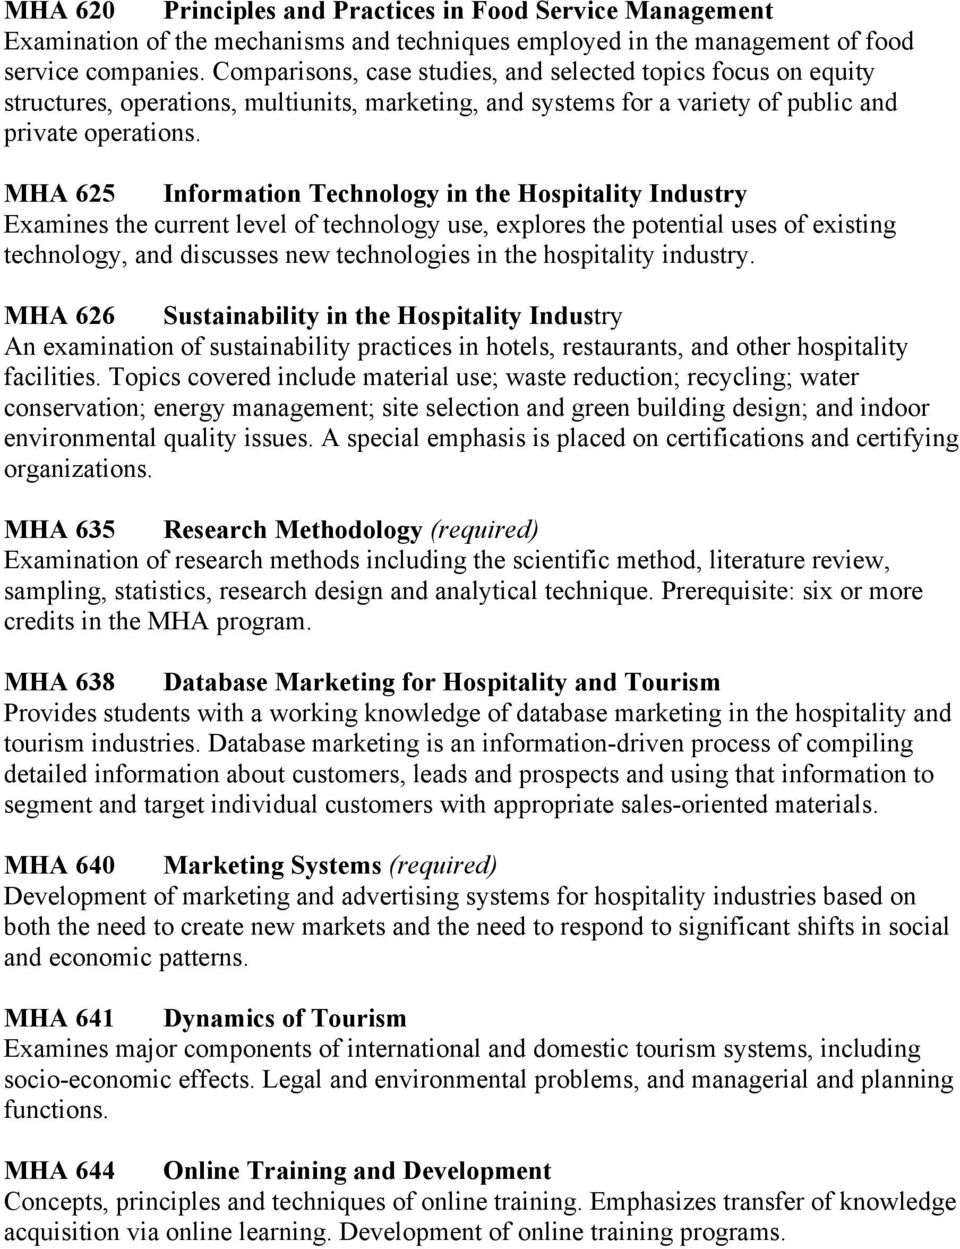 MHA 625 Information Technology in the Hospitality Industry Examines the current level of technology use, explores the potential uses of existing technology, and discusses new technologies in the